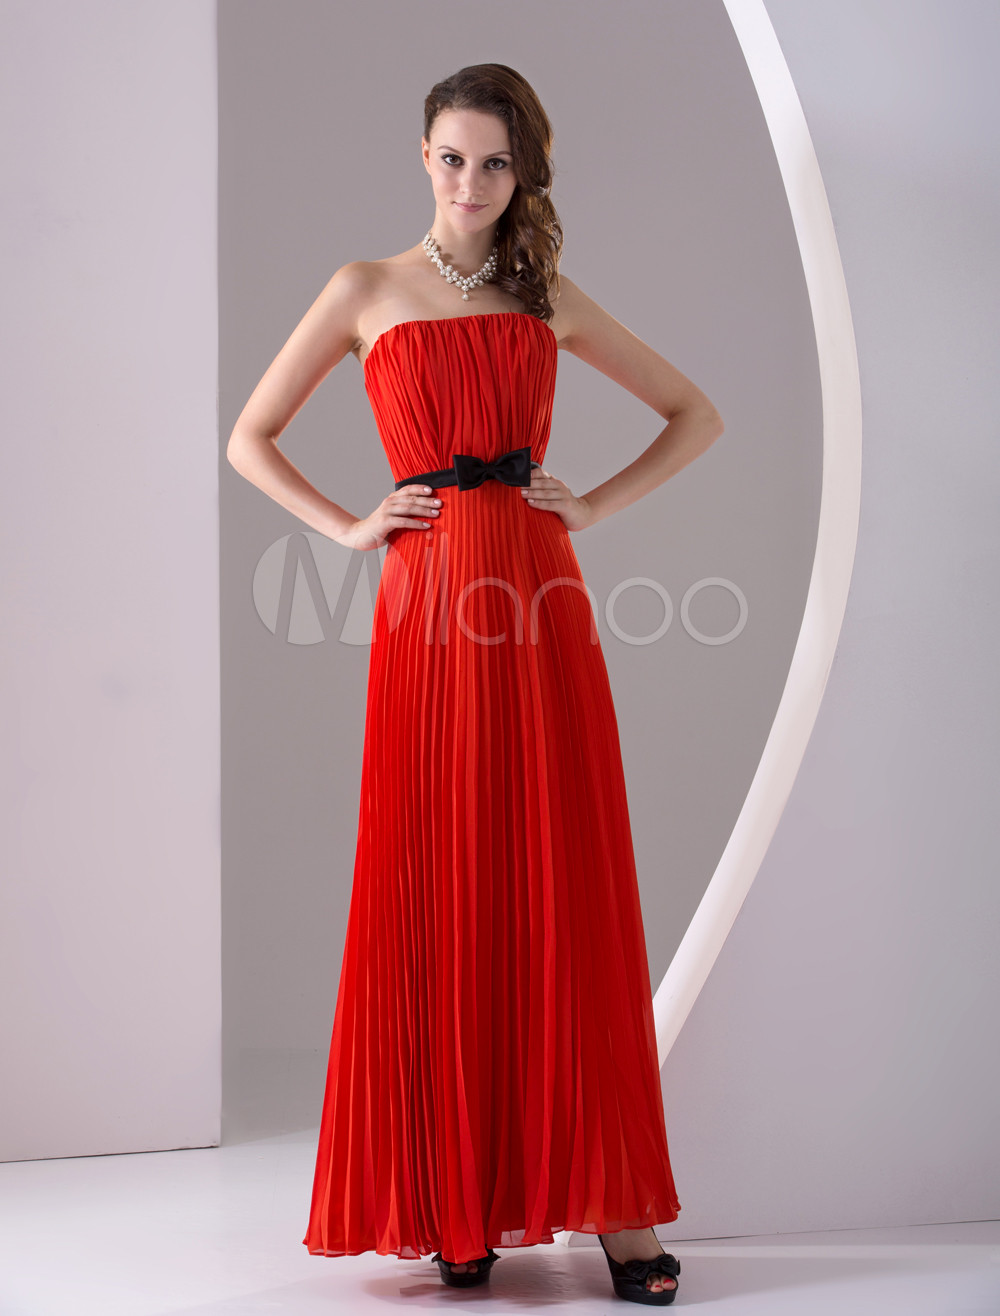 Simple Red Chiffon Strapless Ankle Length Womens Evening Dress (Wedding Cheap Party Dress) photo